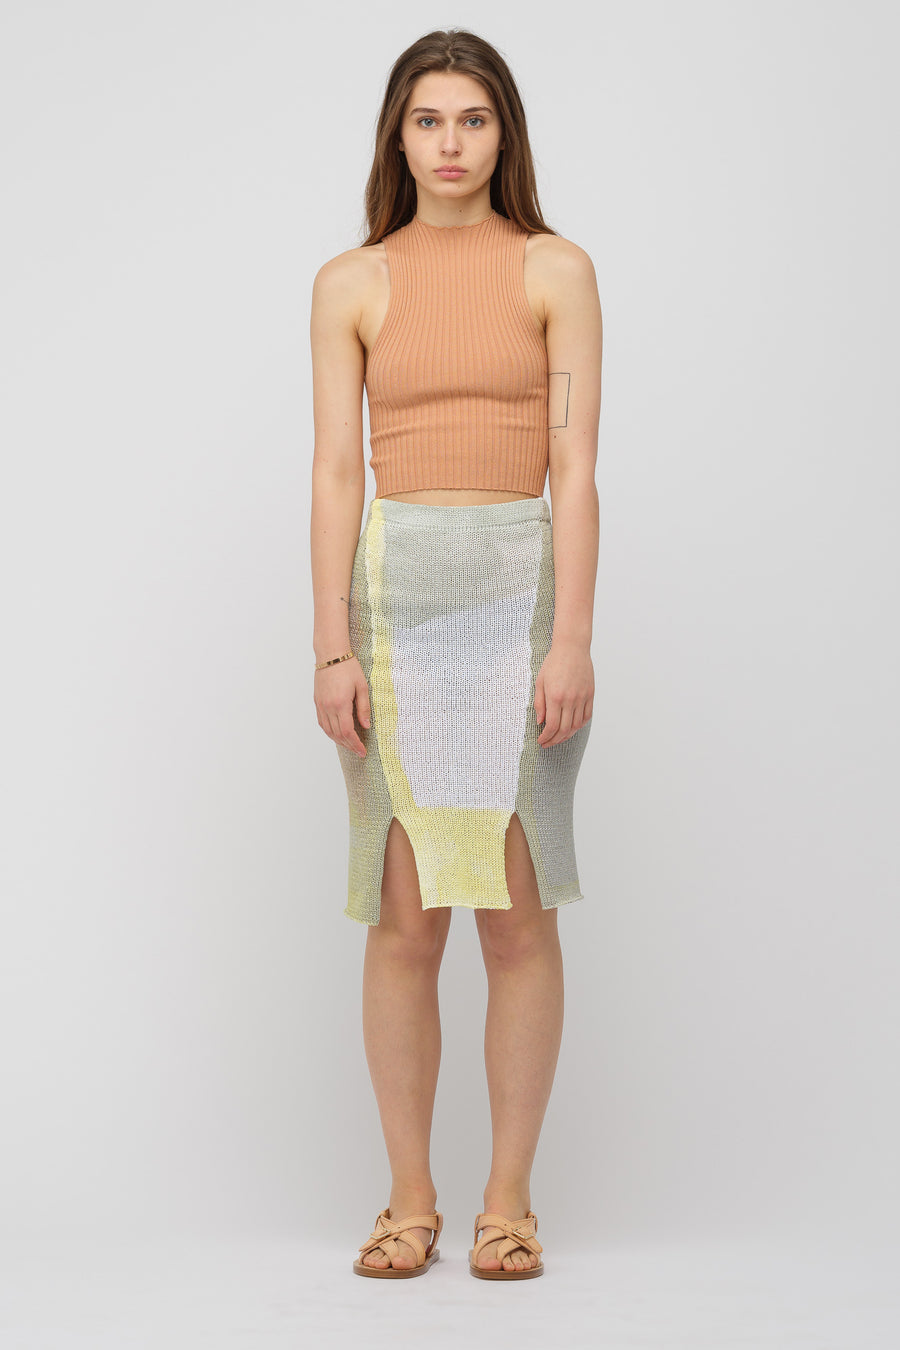 Eckhaus Latta Painted Knit Skirt in Paper Mache Grey - Notre